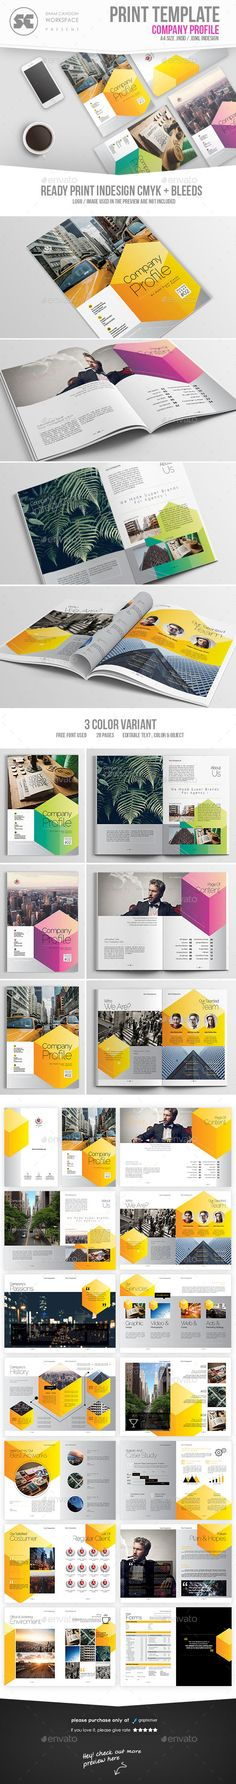 Corporate Brochure Company Profile 1 u2026 Pinteresu2026 - professional business profile template